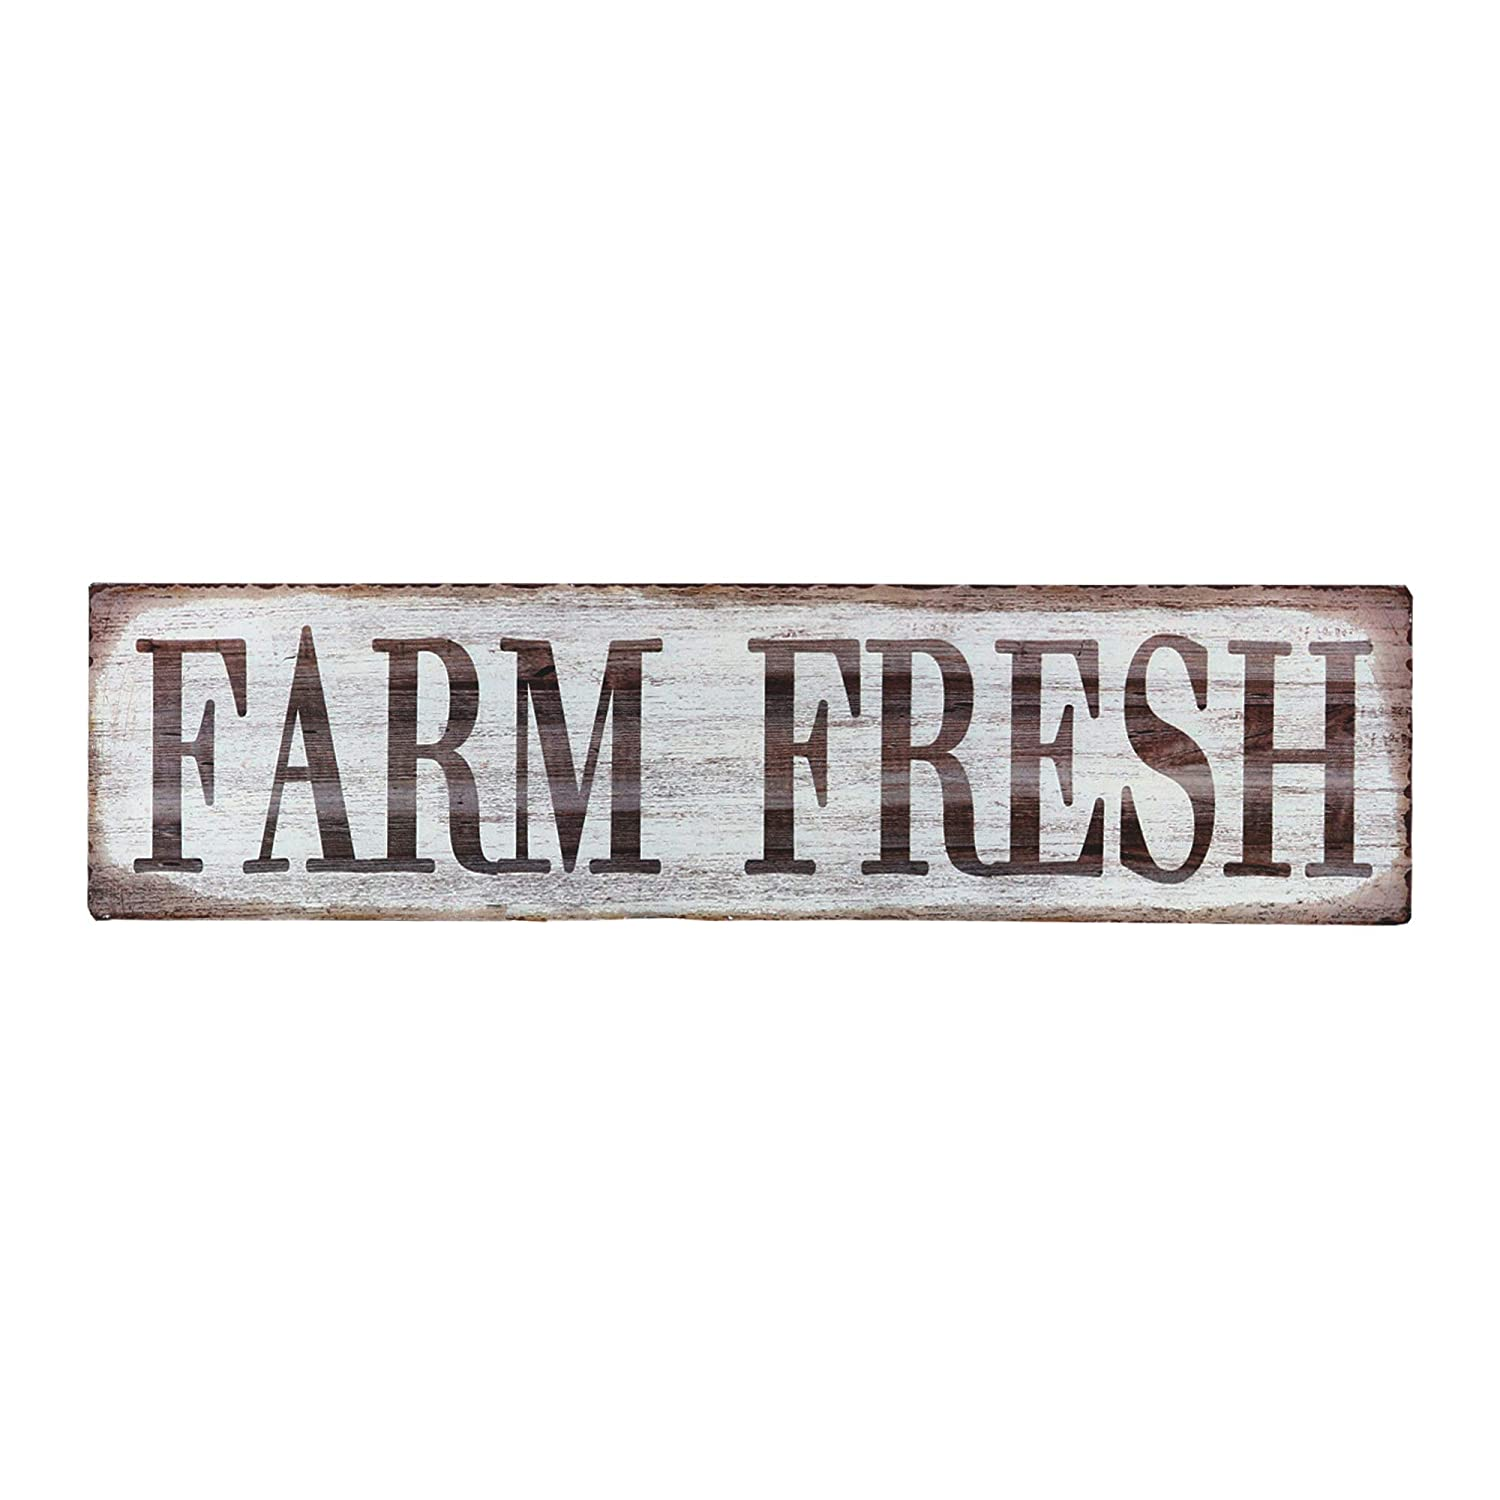 "Barnyard Designs Farm Fresh Retro Vintage Tin Bar Sign Country Home Decor 15.75"" x 4"""